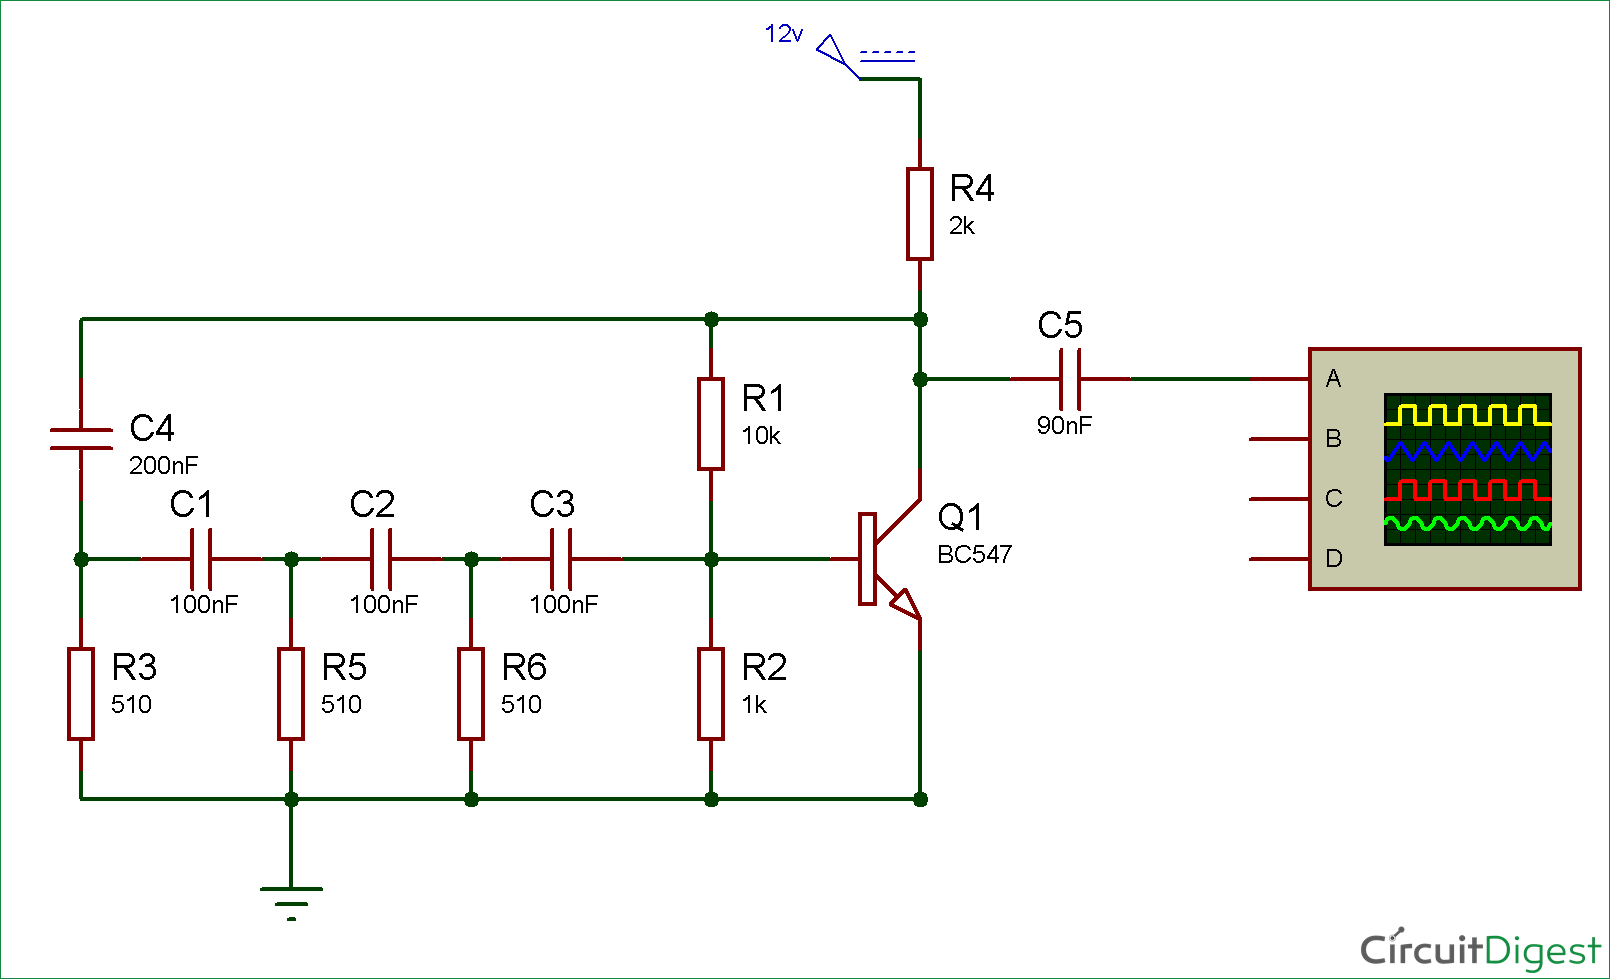 hight resolution of simple sine wave generator circuit using transistor mix simple sine wave generator circuit diagram using transistor